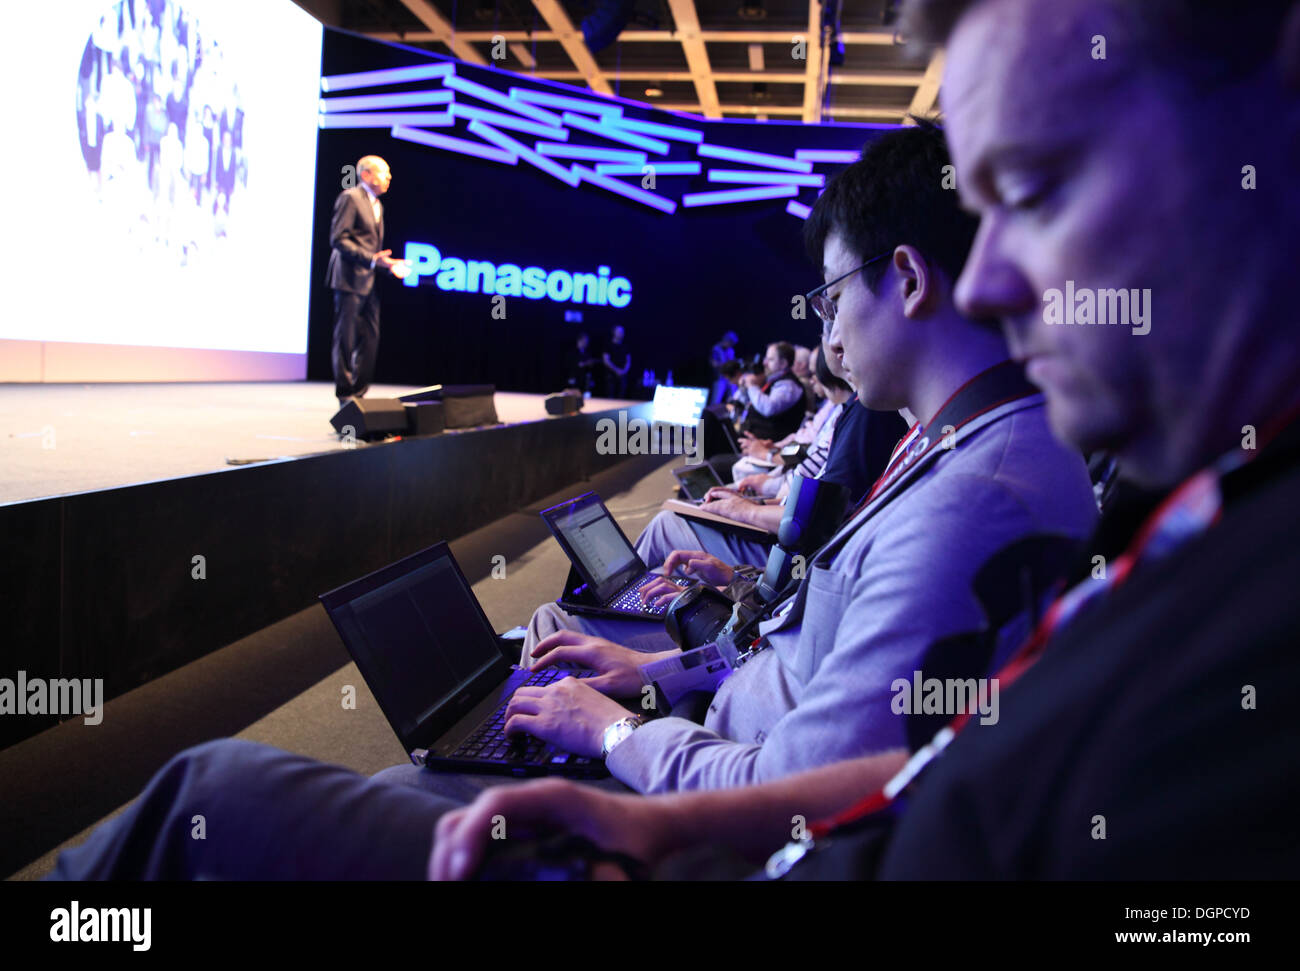 Berlin, Germany, blogger during the Panasonic press conference at IFA 2013 - Stock Image